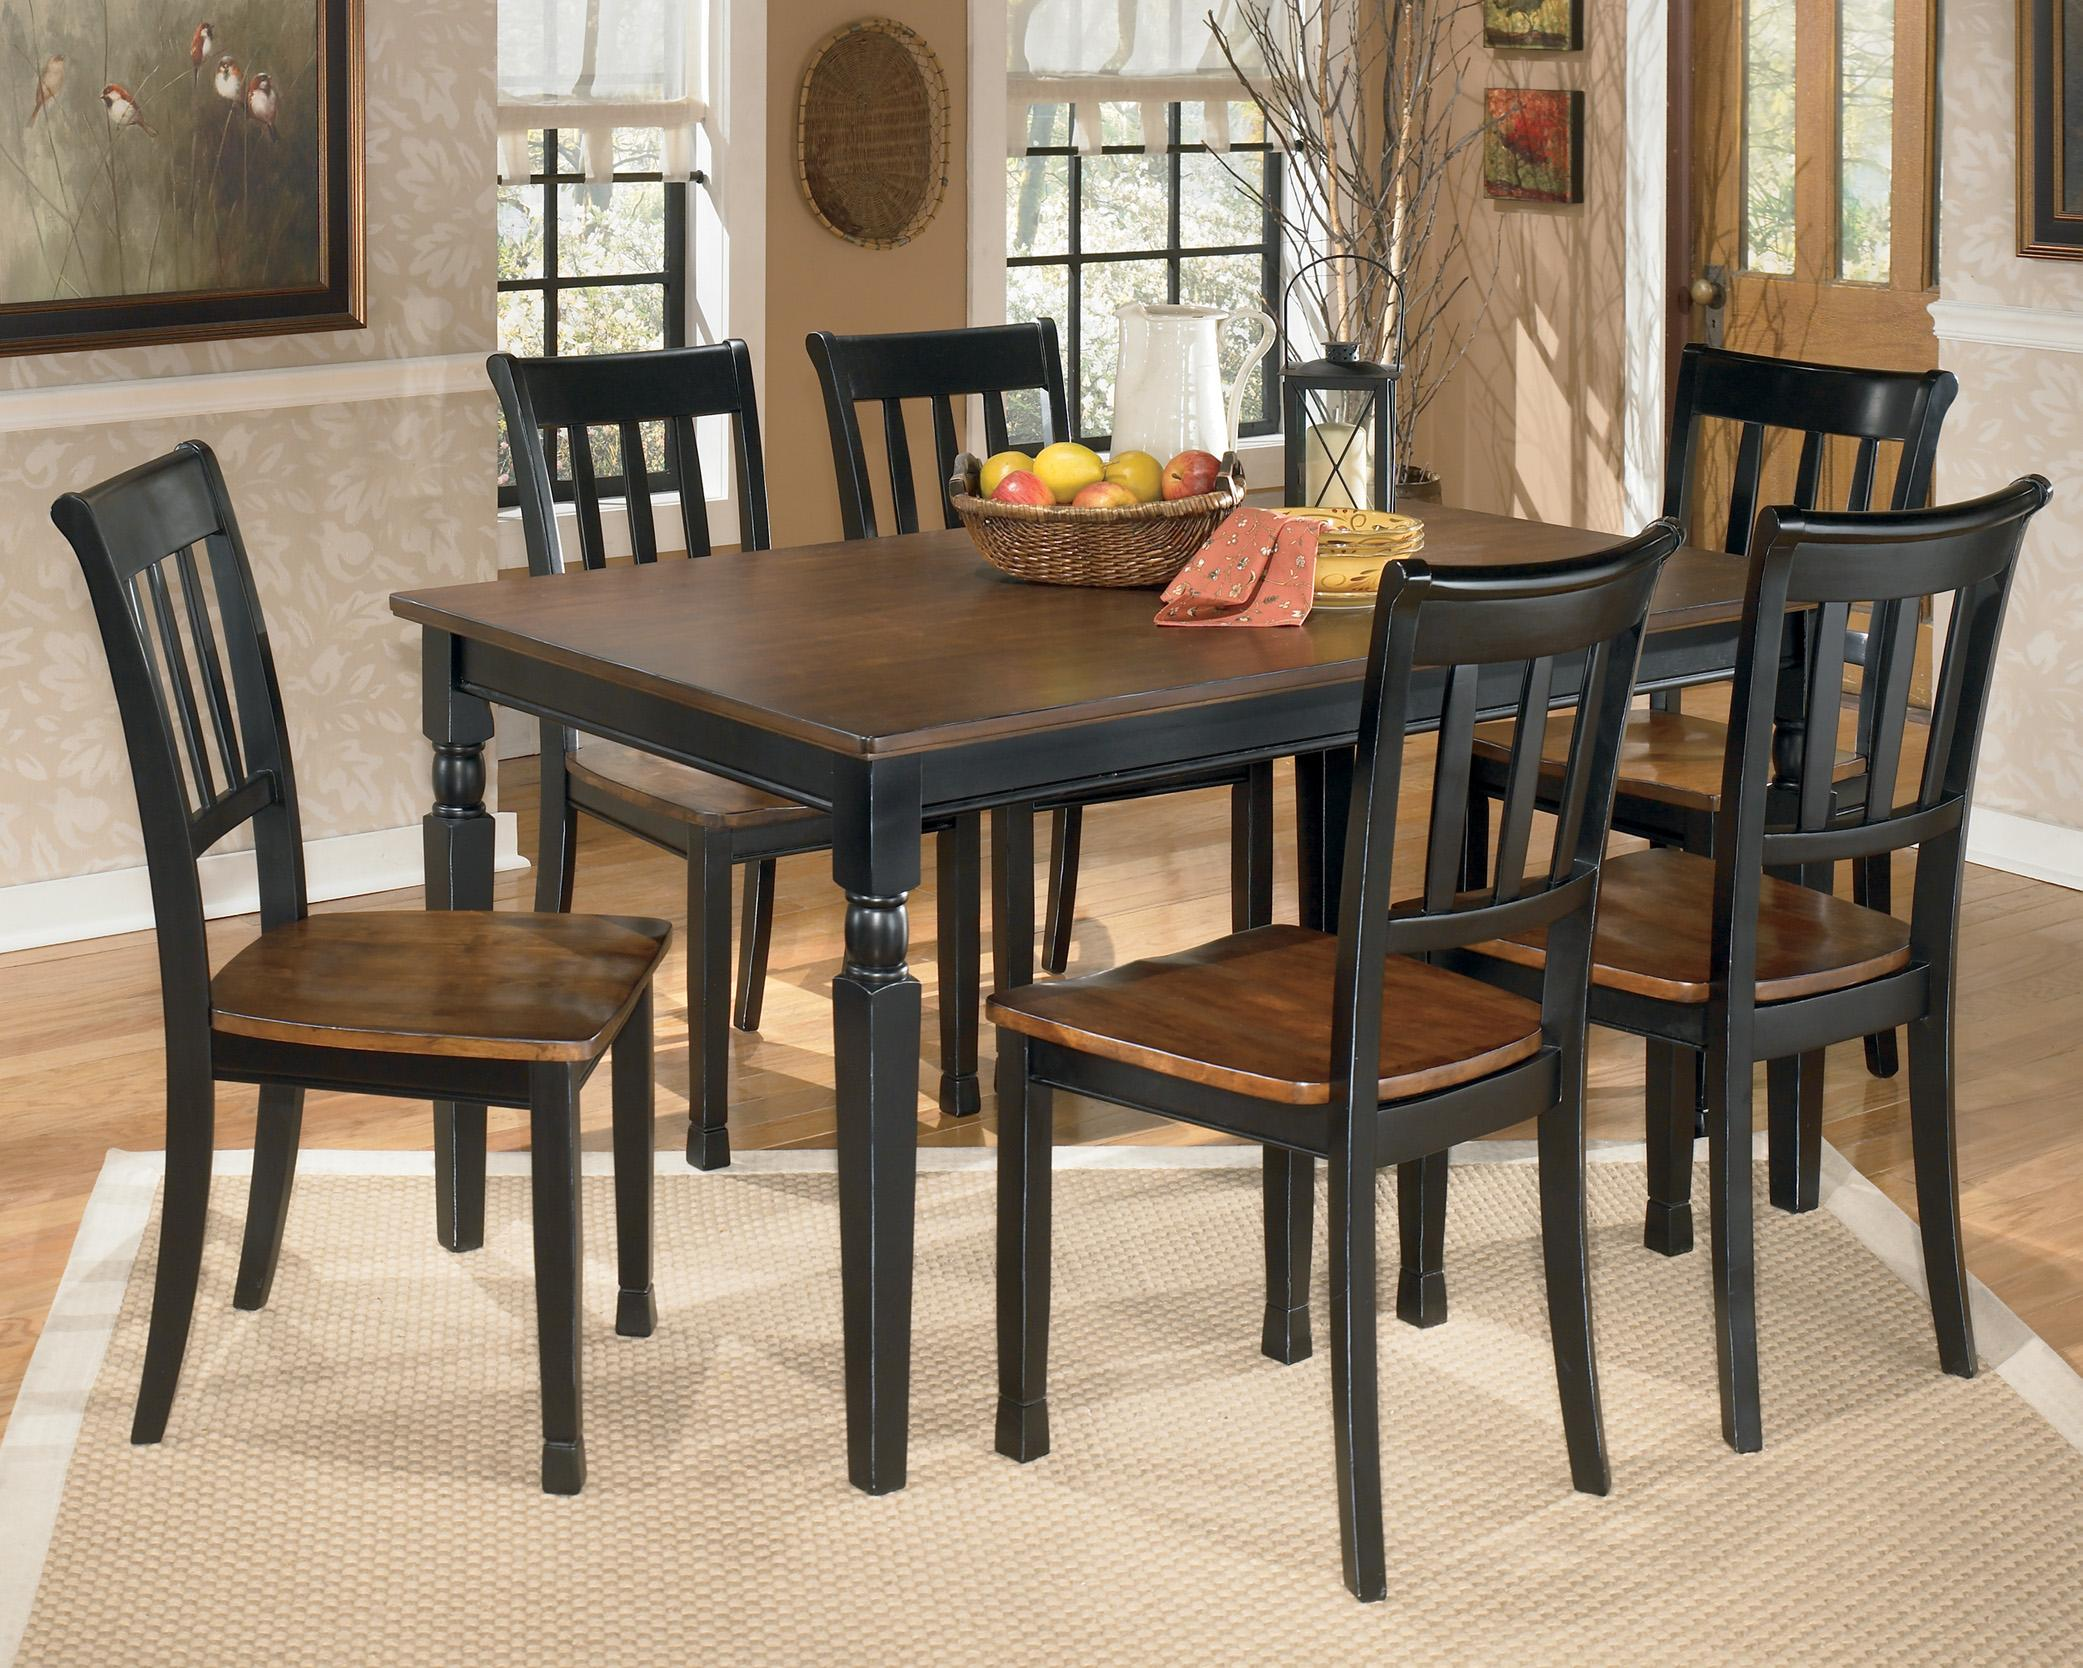 Signature Design by Ashley Owingsville 7 Piece Rectangular Dining     Signature Design by Ashley Owingsville 7 Piece Rectangular Dining Table Set    Item Number